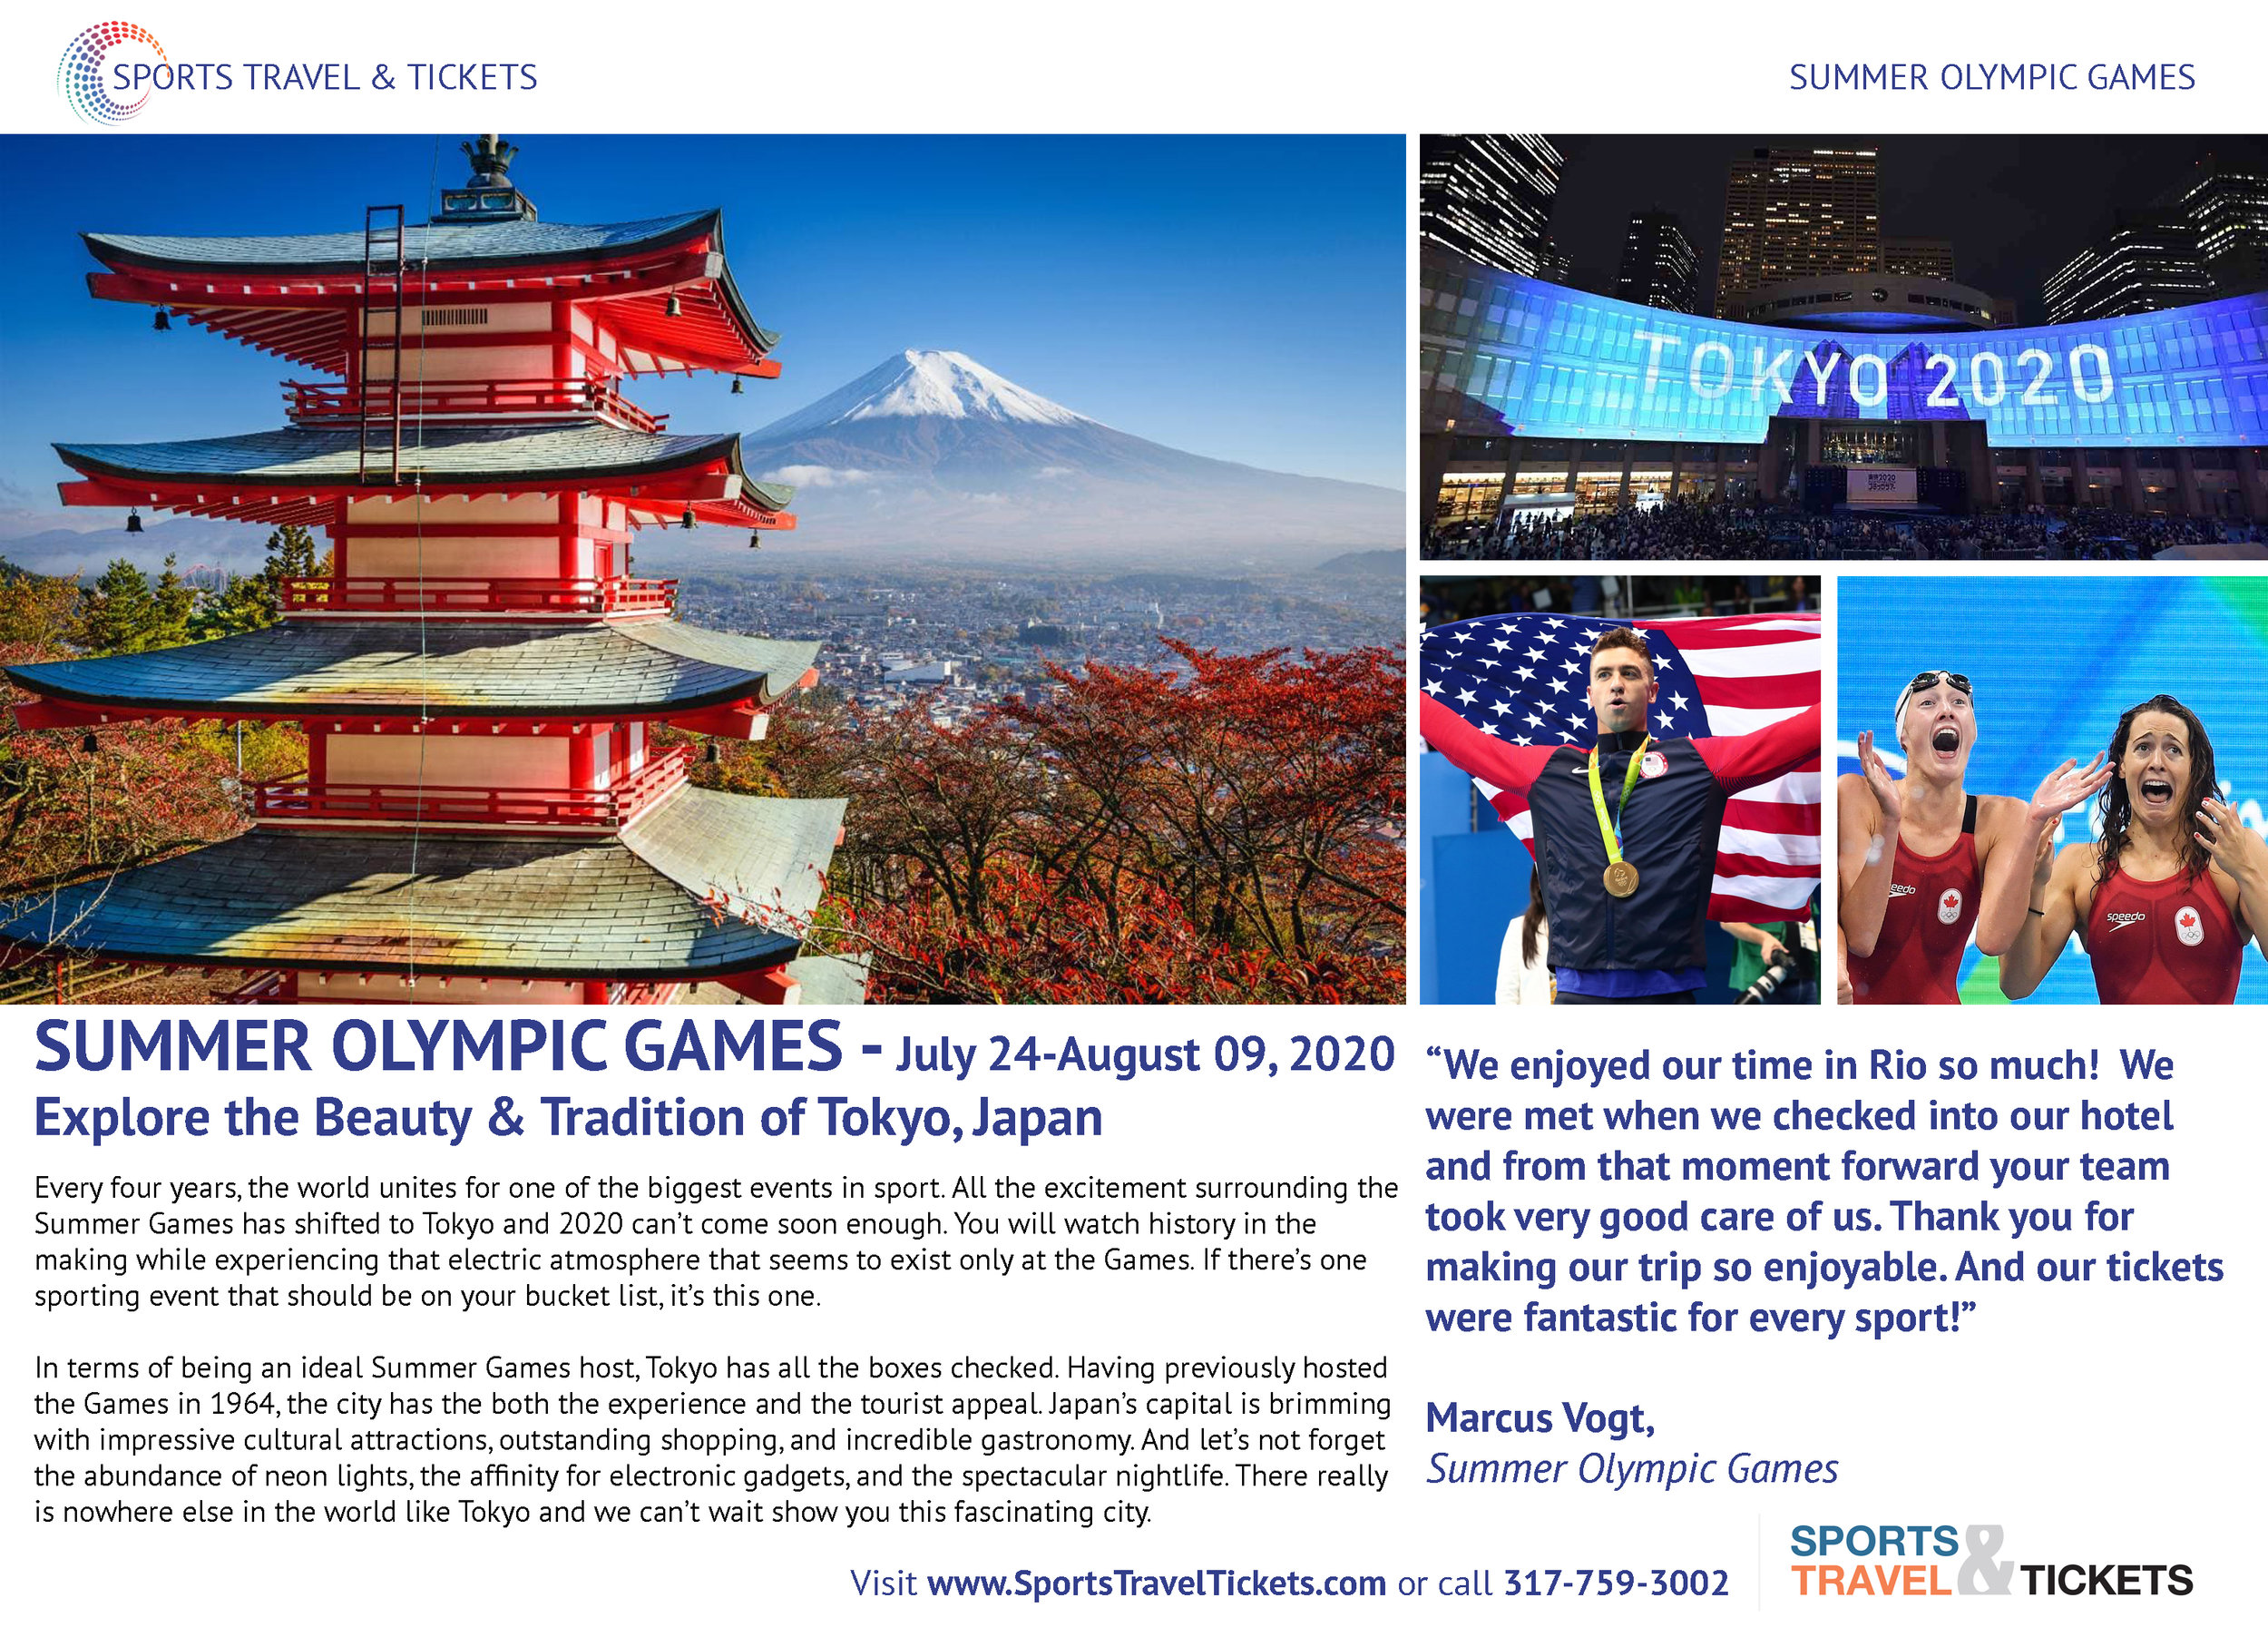 Sports Travel & Tickets Brochure Summer Olympic Games travel tickets.jpg